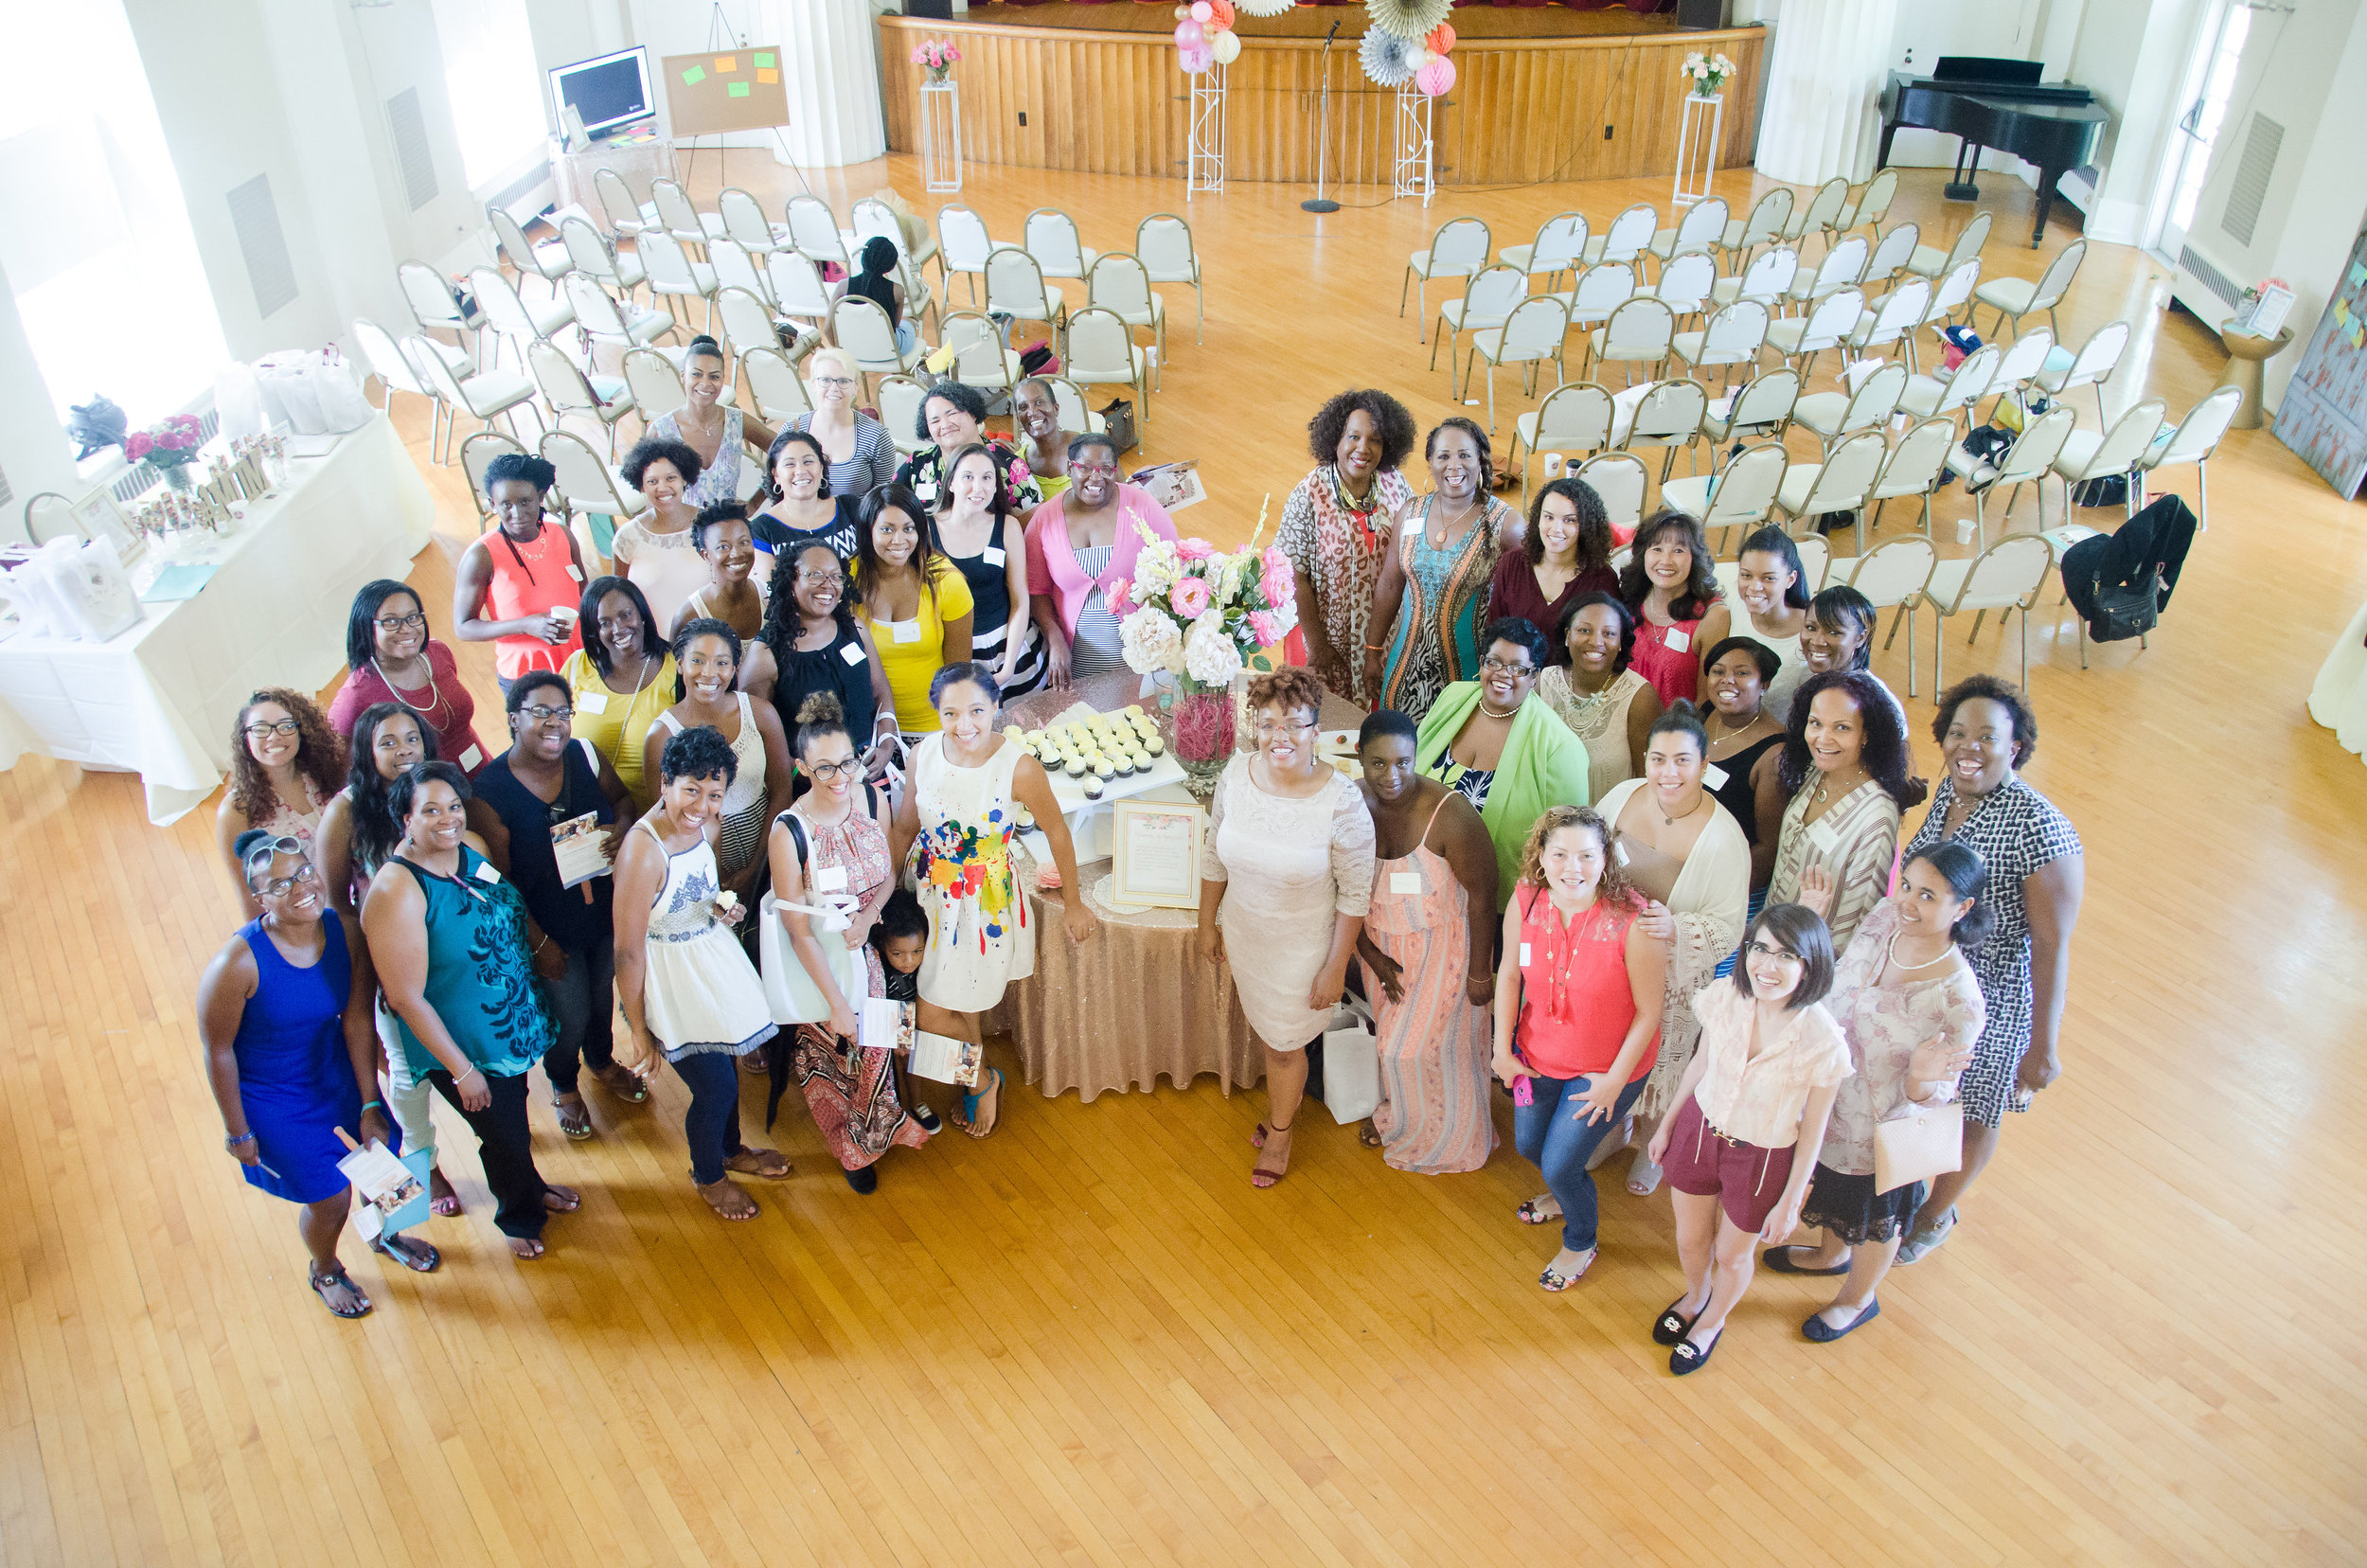 SOUTH JERSEY MOMS GROUP - COTERIE